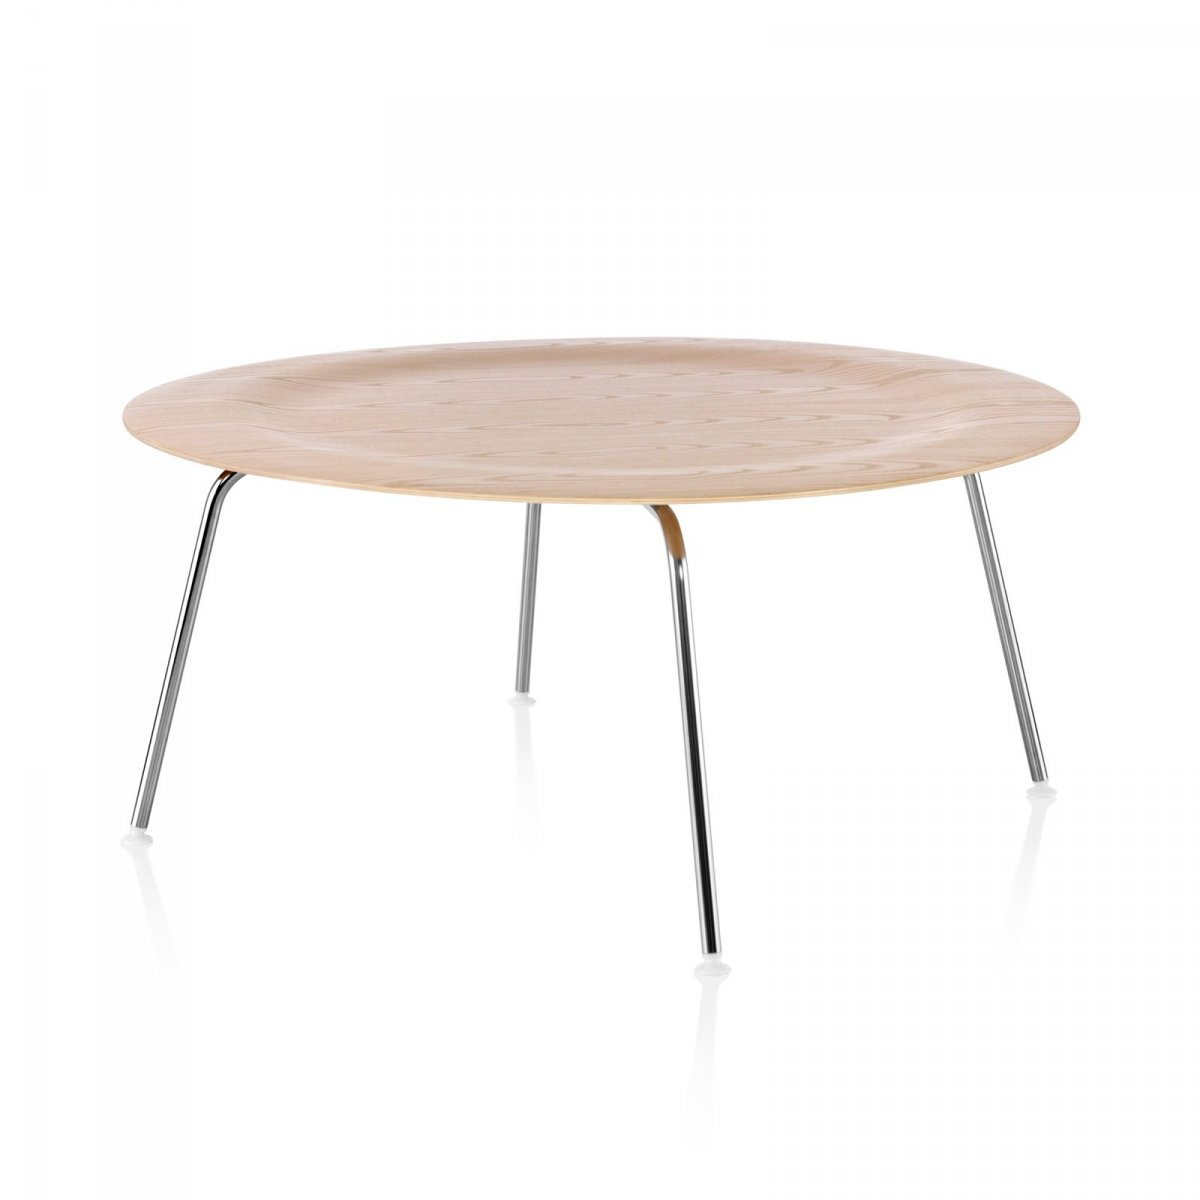 Eames Molded Plywood Coffee Table Metal Base, white ash top, trivalent chrome base.